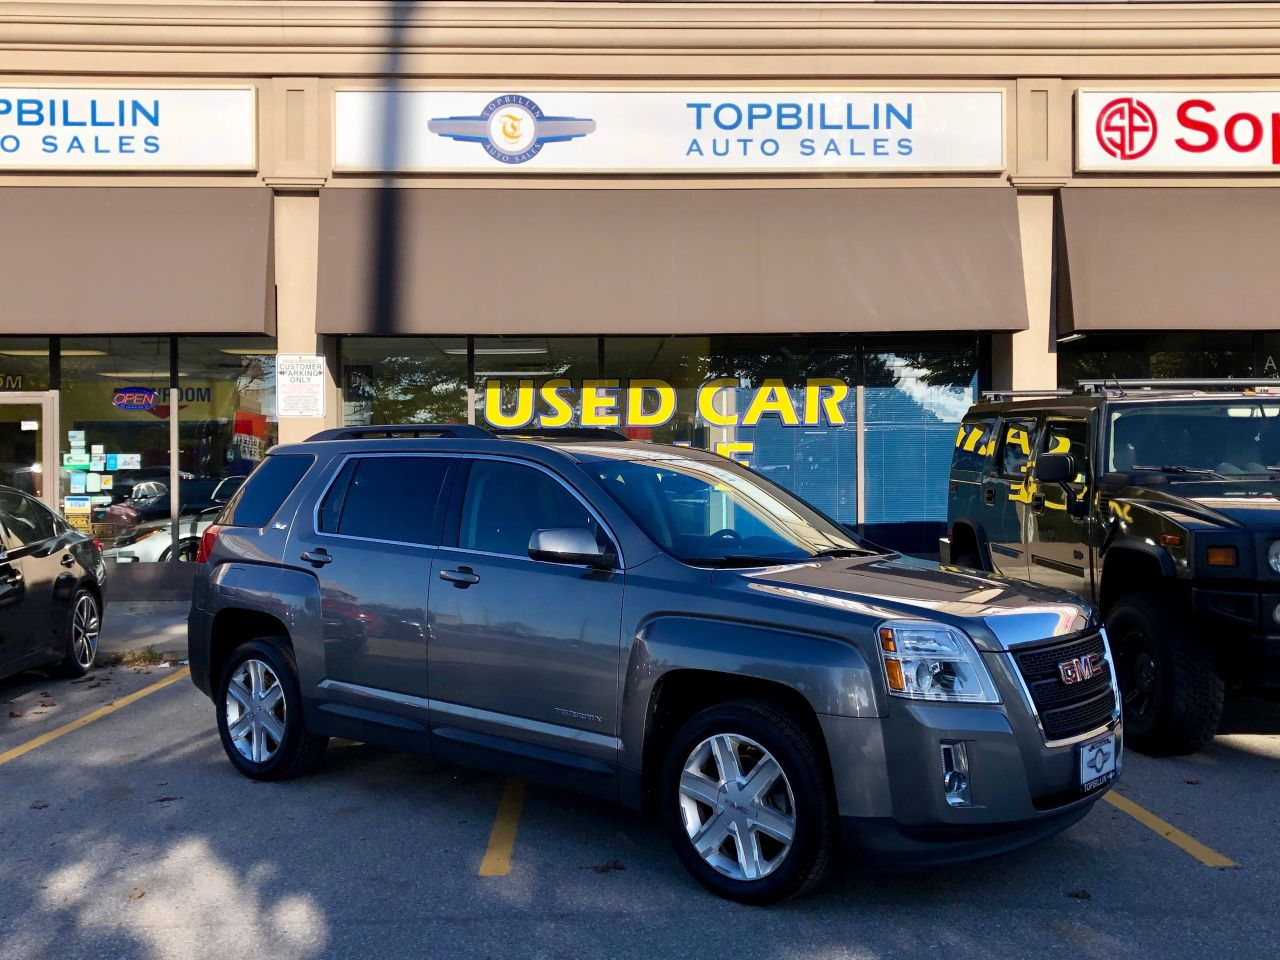 2012 GMC Terrain SLT AWD Only 38K Km, Leather, Roof